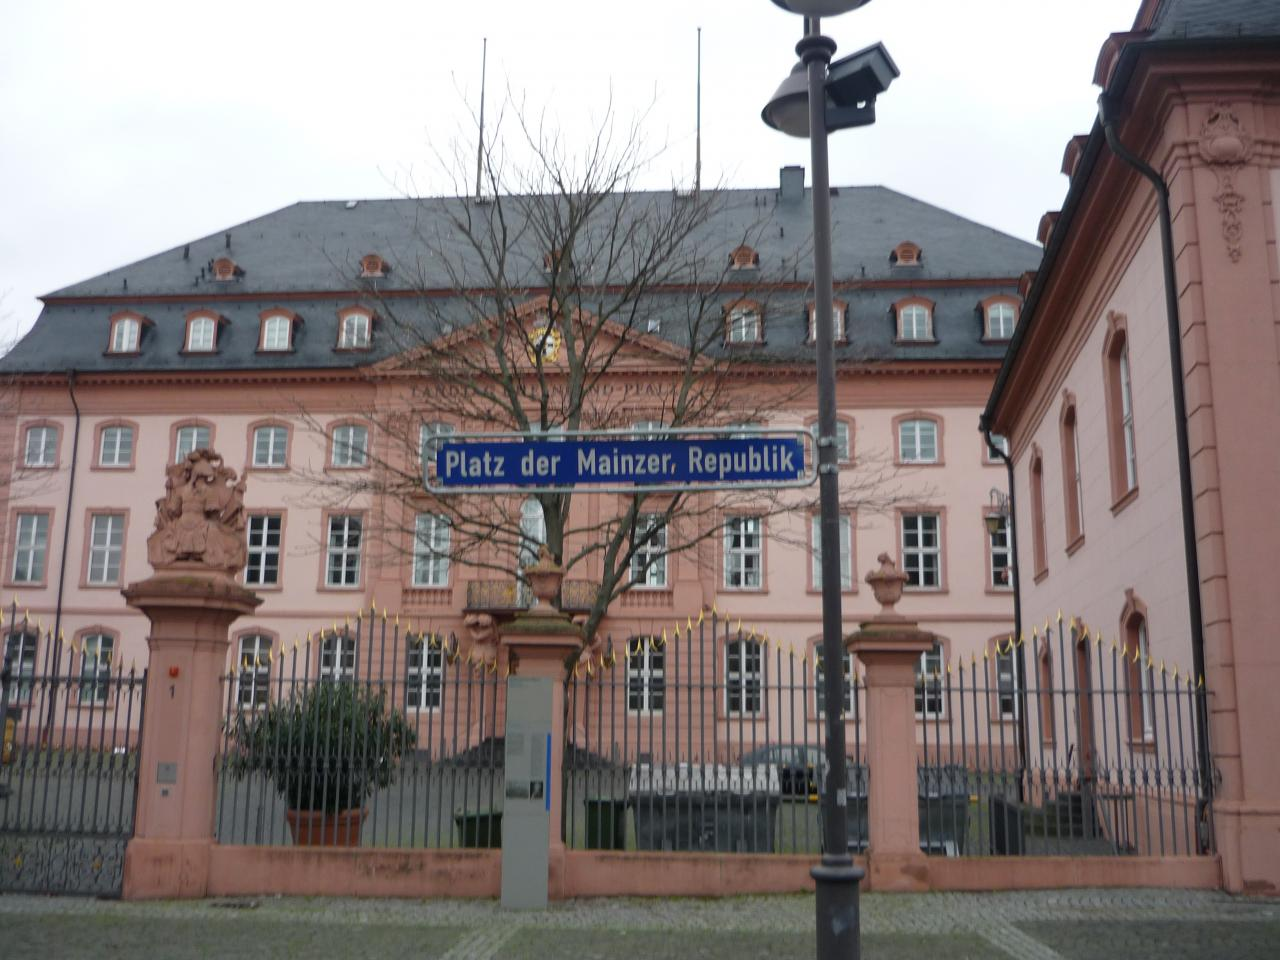 Platz der Mainzer, Republik